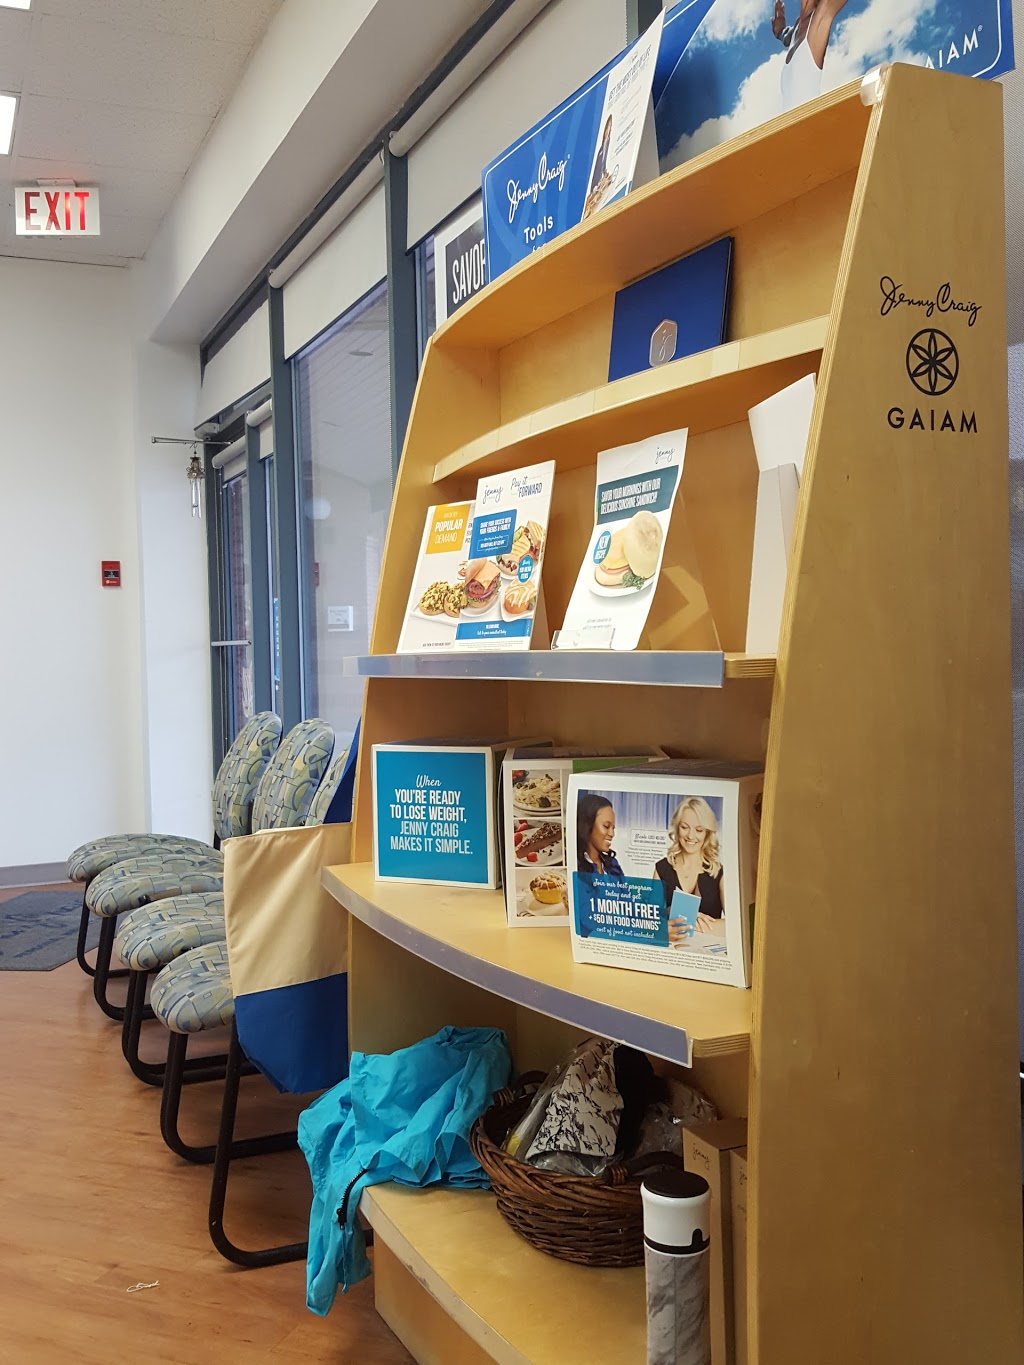 Jenny Craig Weight Loss Center | health | 395 Wellington Rd #22, London, ON N6C 5Z6, Canada | 5196856500 OR +1 519-685-6500